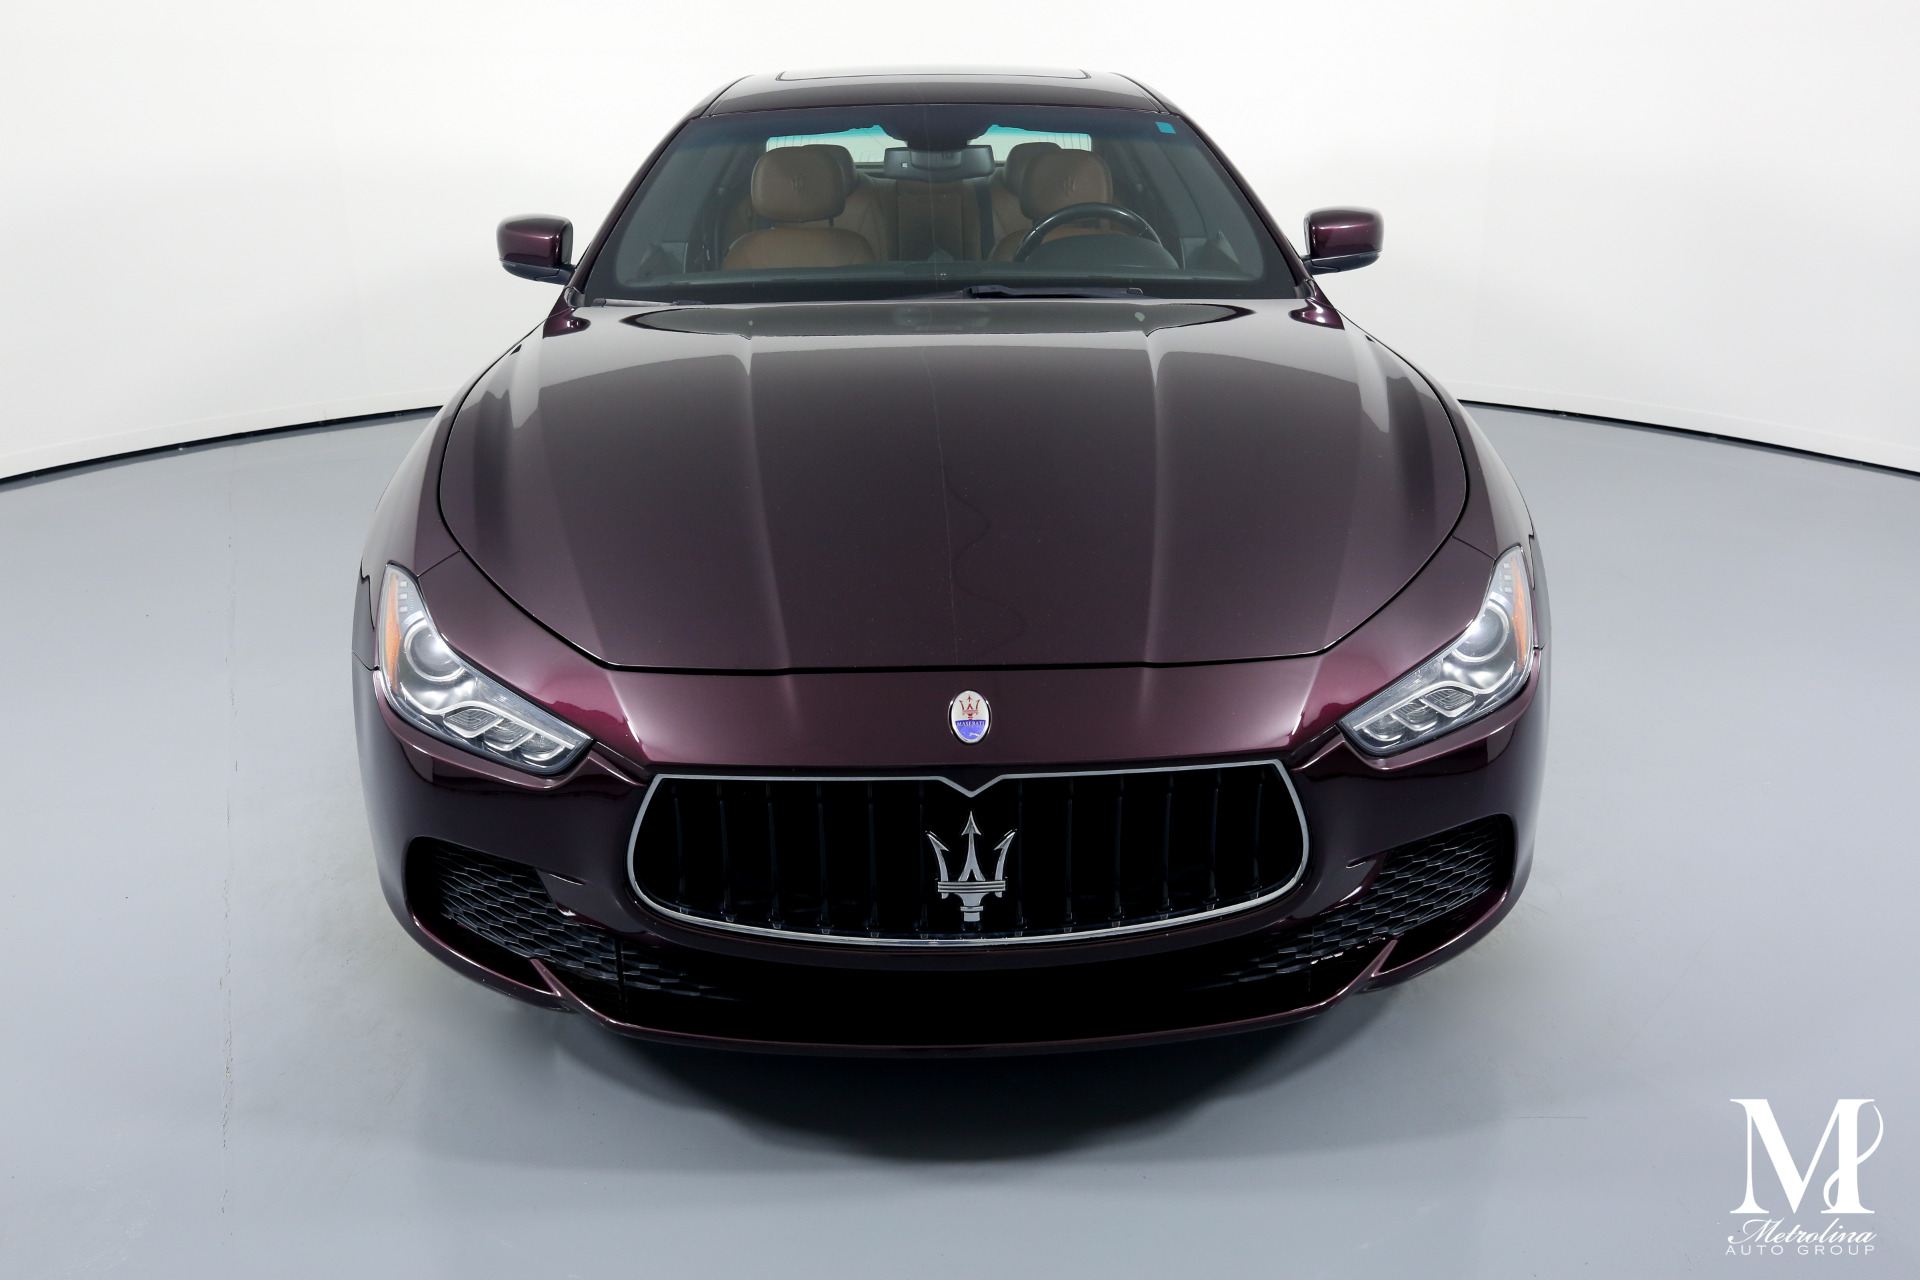 Used 2015 Maserati Ghibli S Q4 for sale Call for price at Metrolina Auto Group in Charlotte NC 28217 - 3